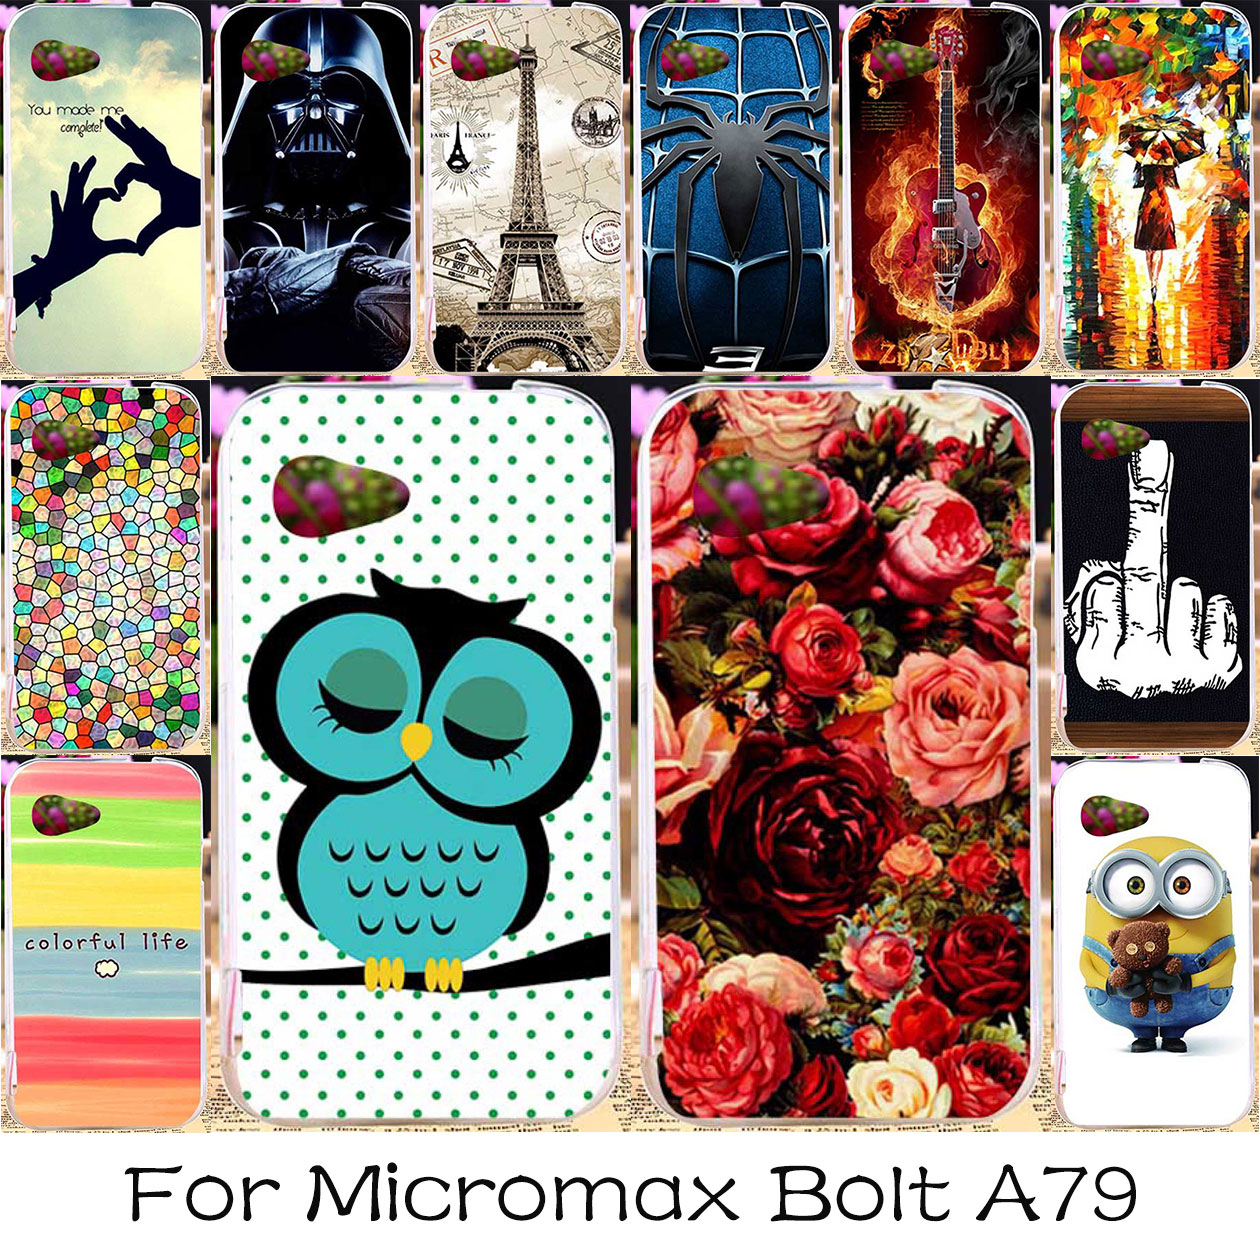 finest selection c6ea1 0fdf1 TAOYUNXI Silicone Phone Case For Micromax Bolt A79 Soft Housing Bag Cover  For Micromax Bolt A79 Skin Shell Back Cover Case